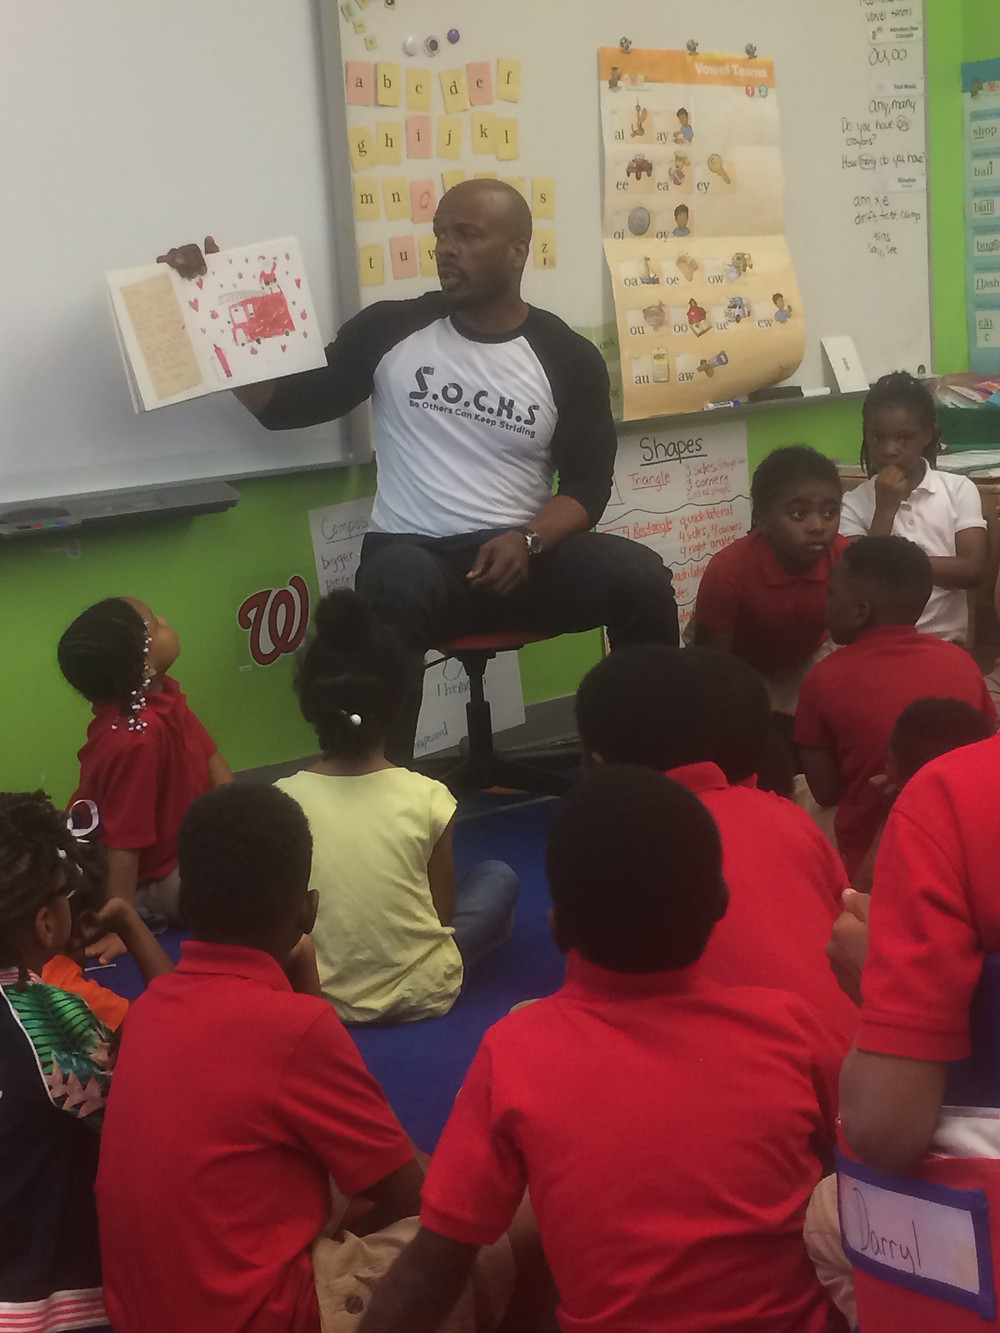 damon jones the steam teacher steam america literacy early education literacy bilingual books resources online education